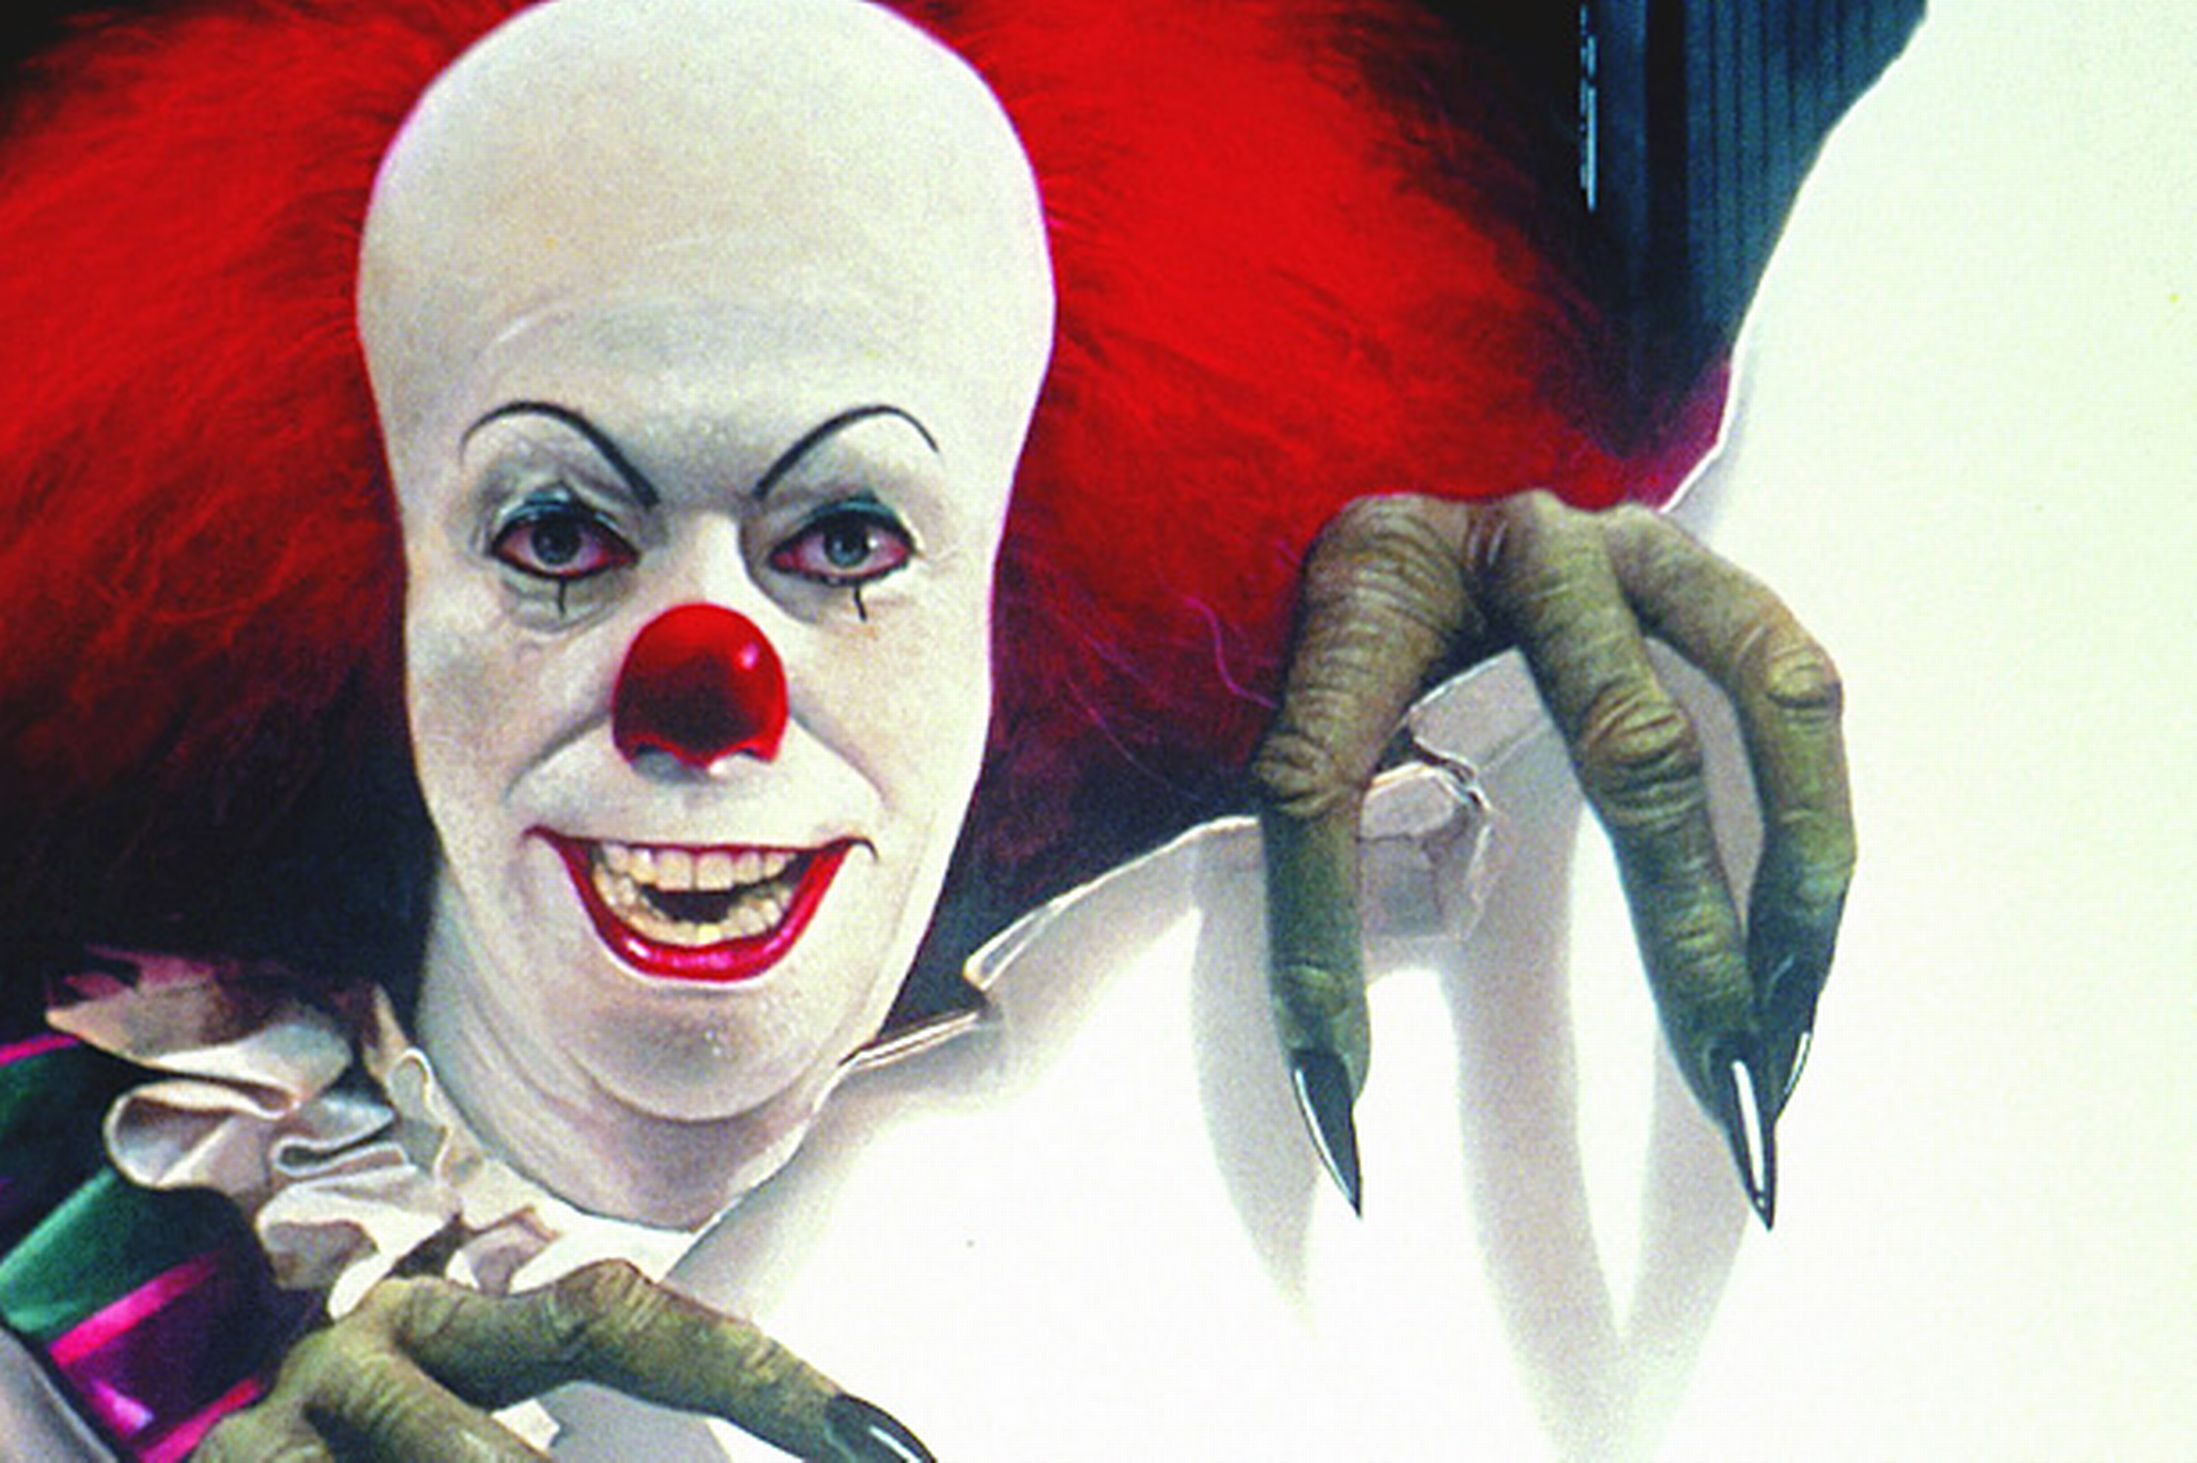 25 years of pennywise